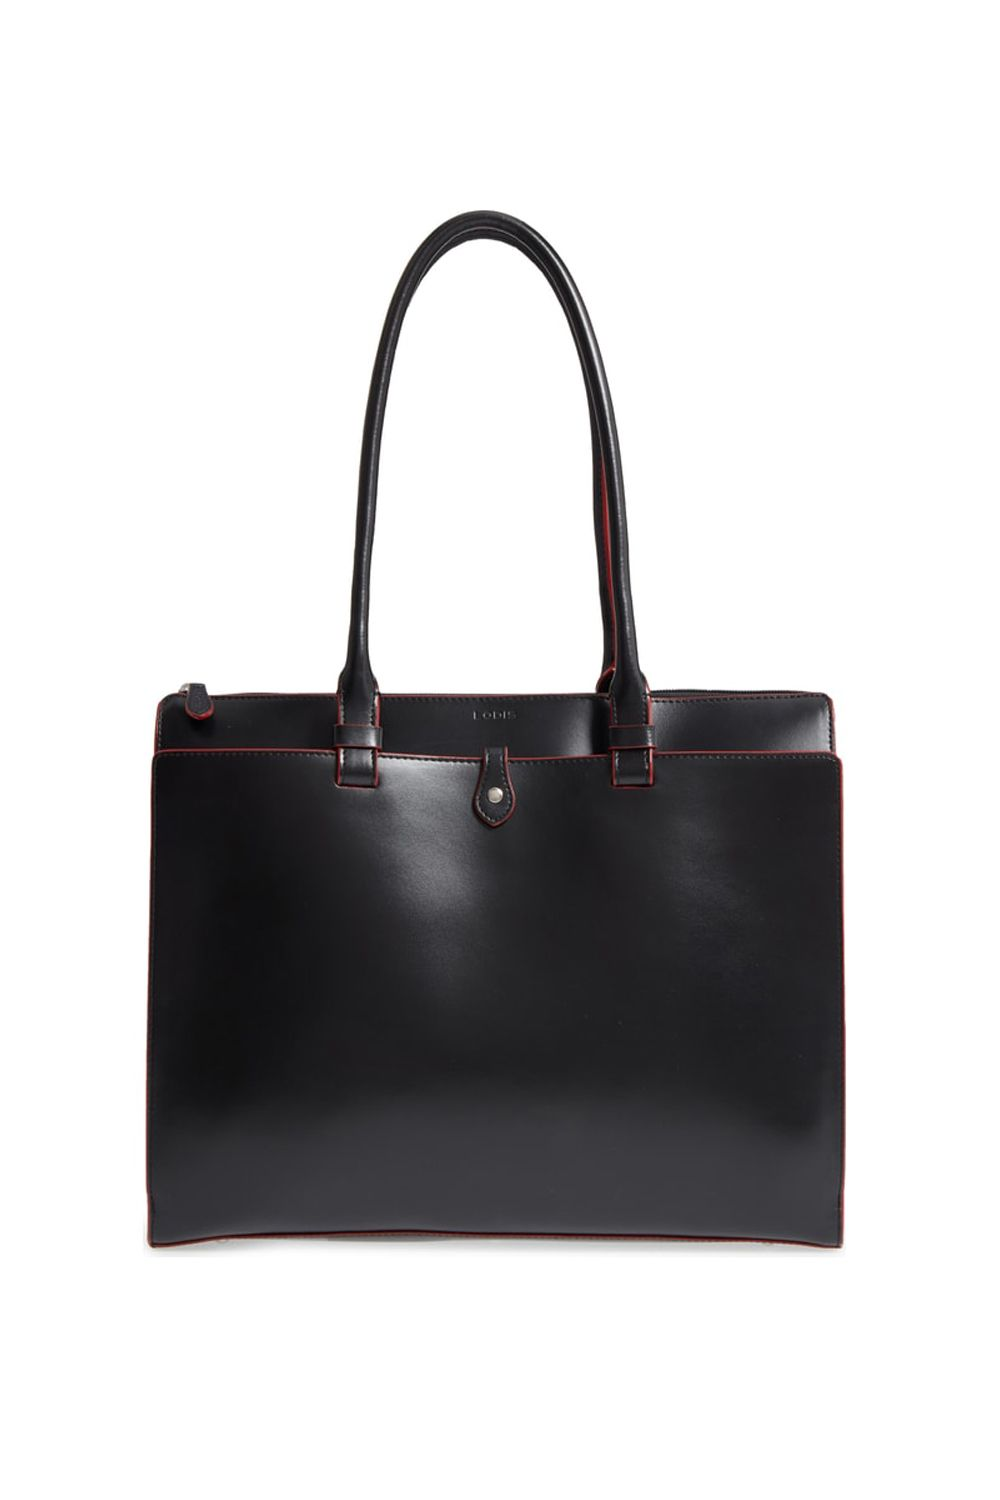 f9c1f1196696 15 Best Laptop Bags for Women 2018 - Stylish Computer Totes and Handbags